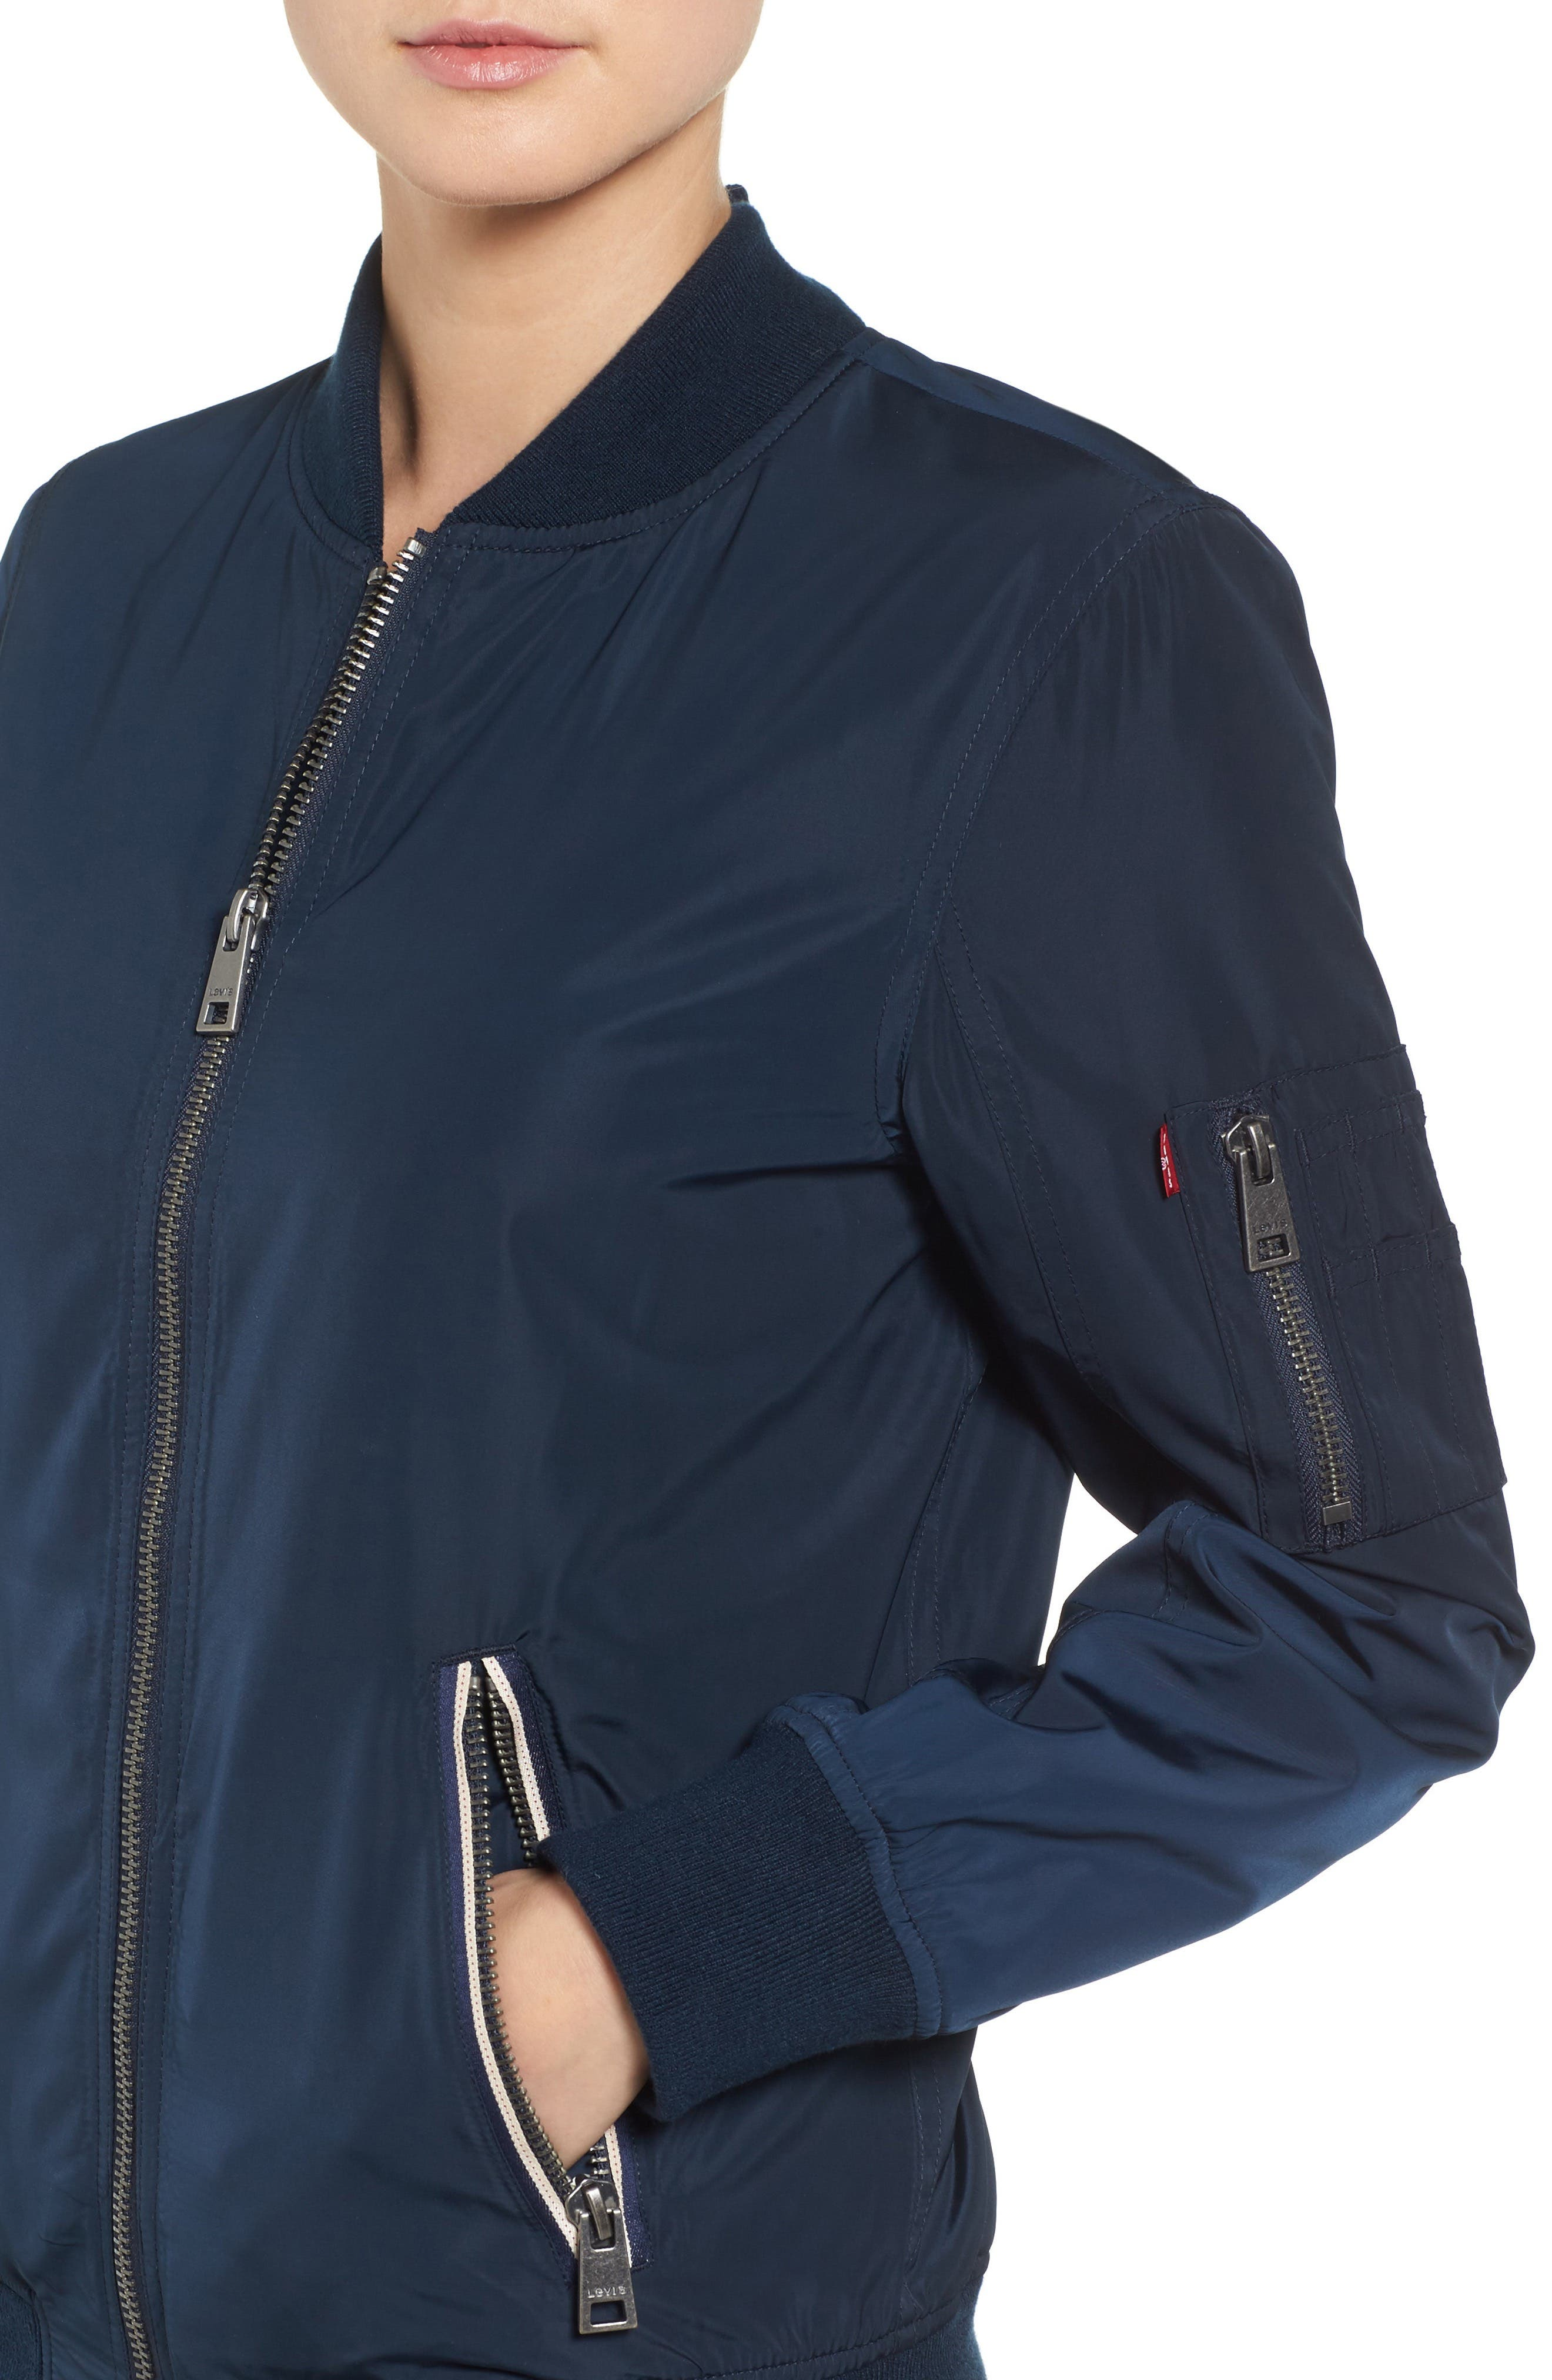 Levi's MA-1 Satin Bomber Jacket,                             Alternate thumbnail 4, color,                             Navy